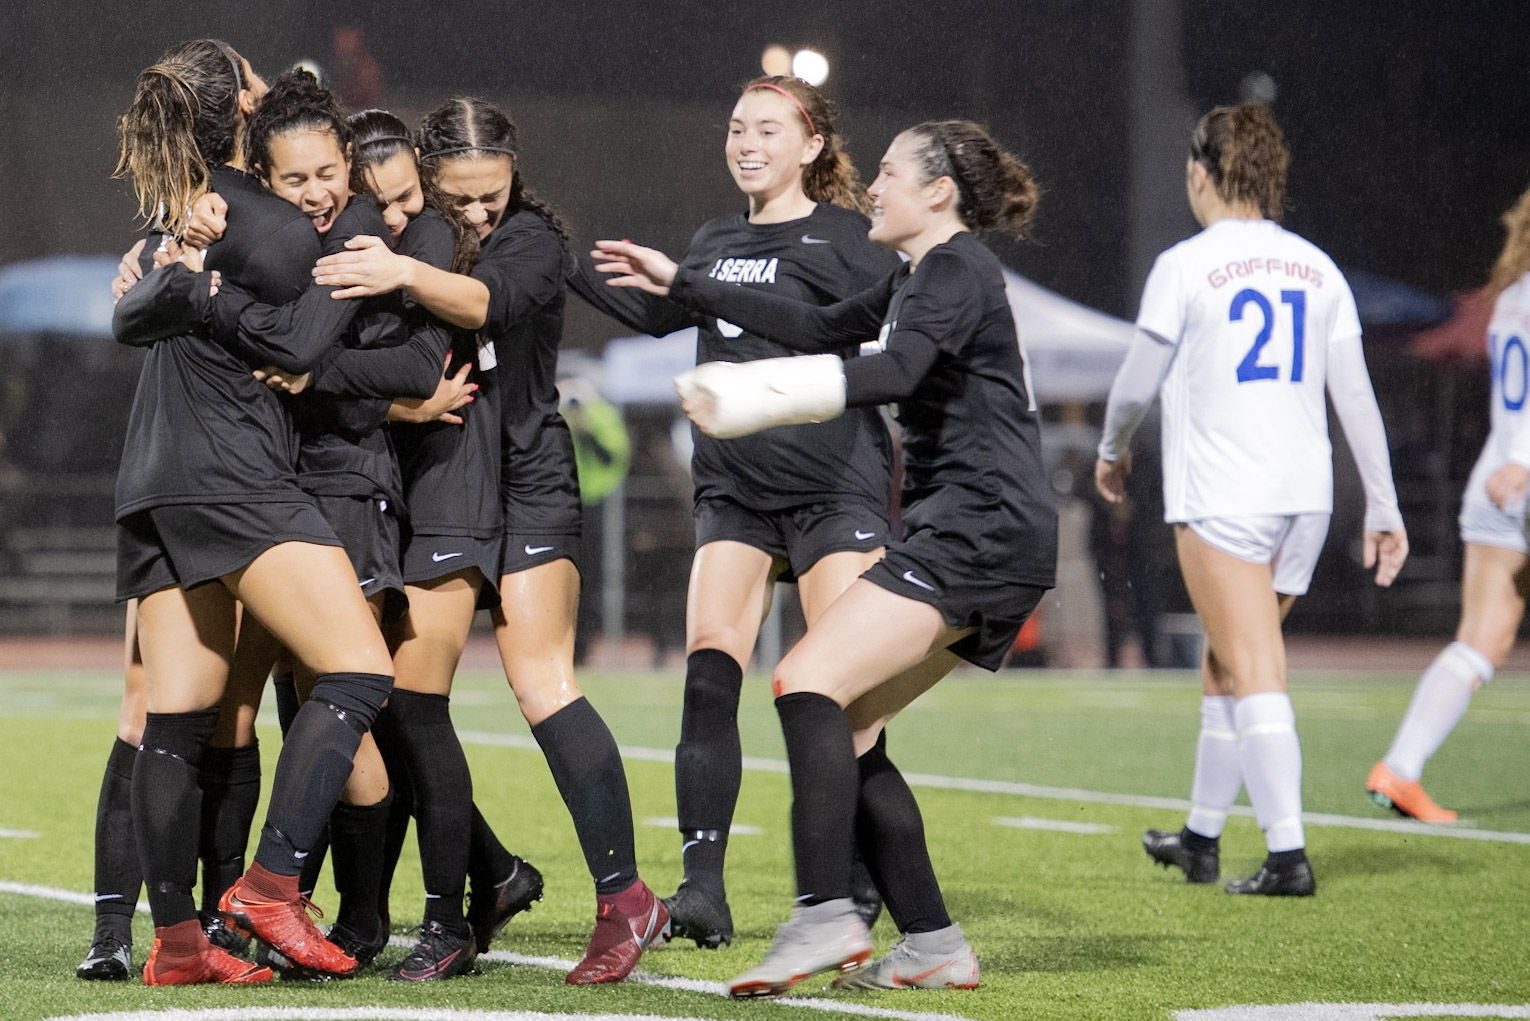 JSerra girls soccer won its third straight CIF-SS championship and completed the treble with Trinity League, CIF-SS and CIF SoCal Regional titles. Photo: David Williams